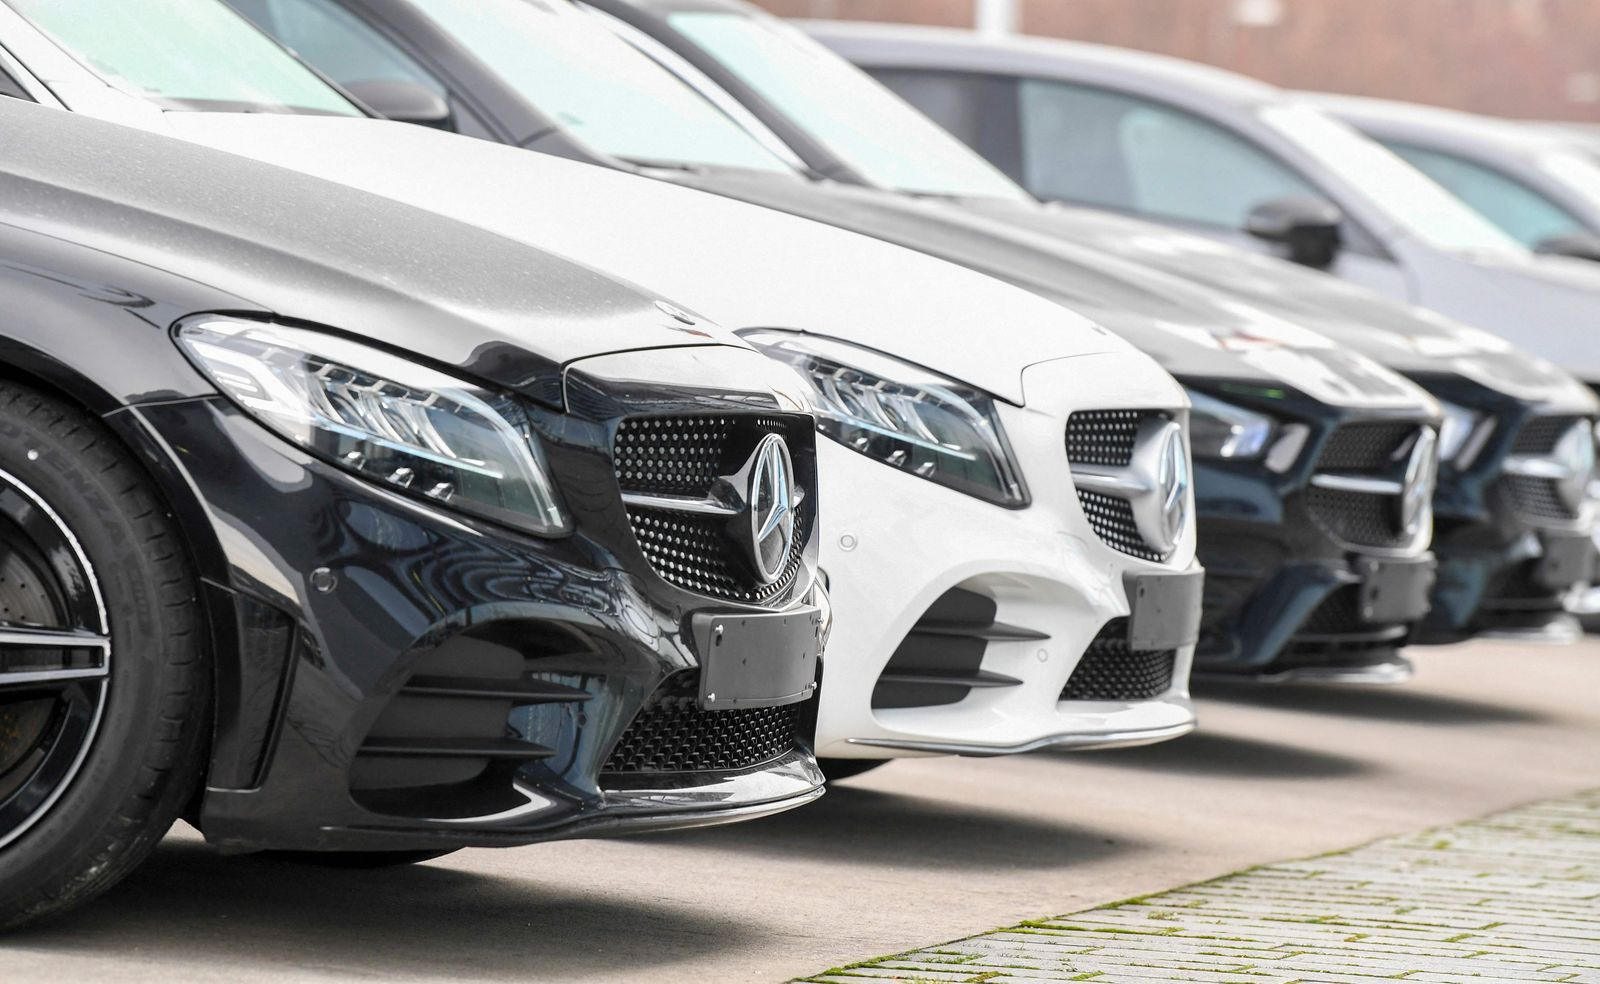 GERMANY-FILES-GERMANY-AUTOMOBILE-INDUSTRY-INDICATOR-HEALTH-VIRUS